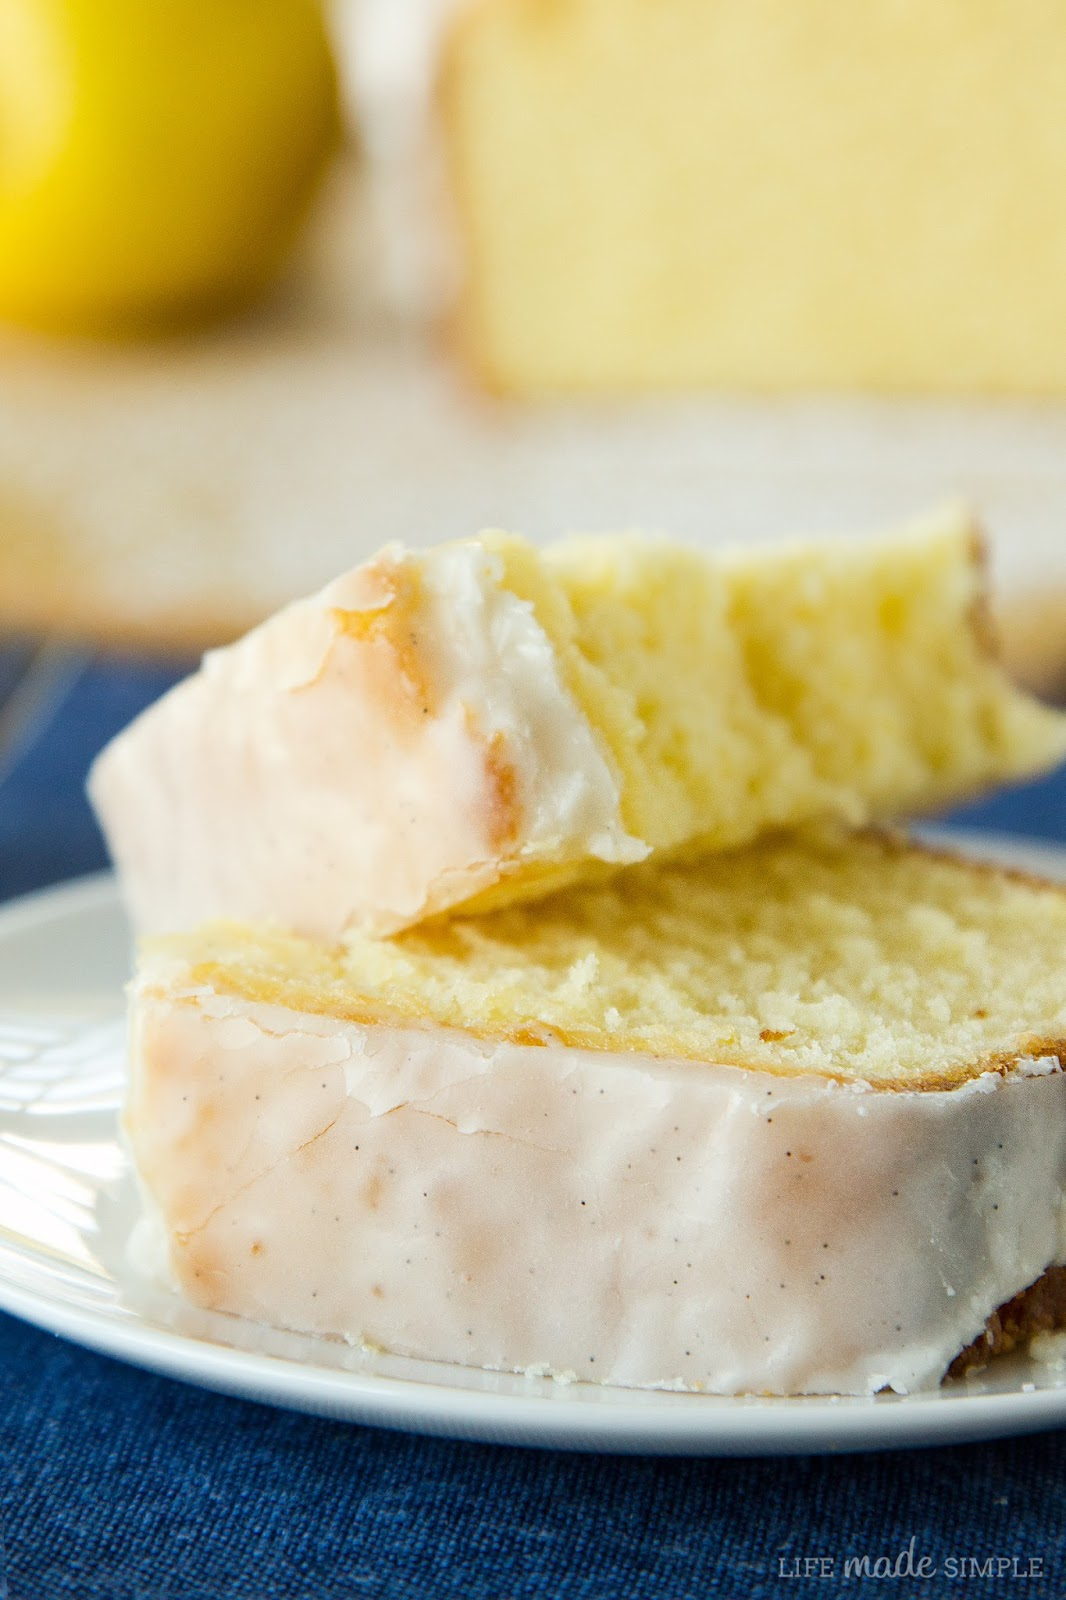 Lemon+Pound+Cake+Recipes Lemon Pound Cake Parfait Recipes — Dishmaps